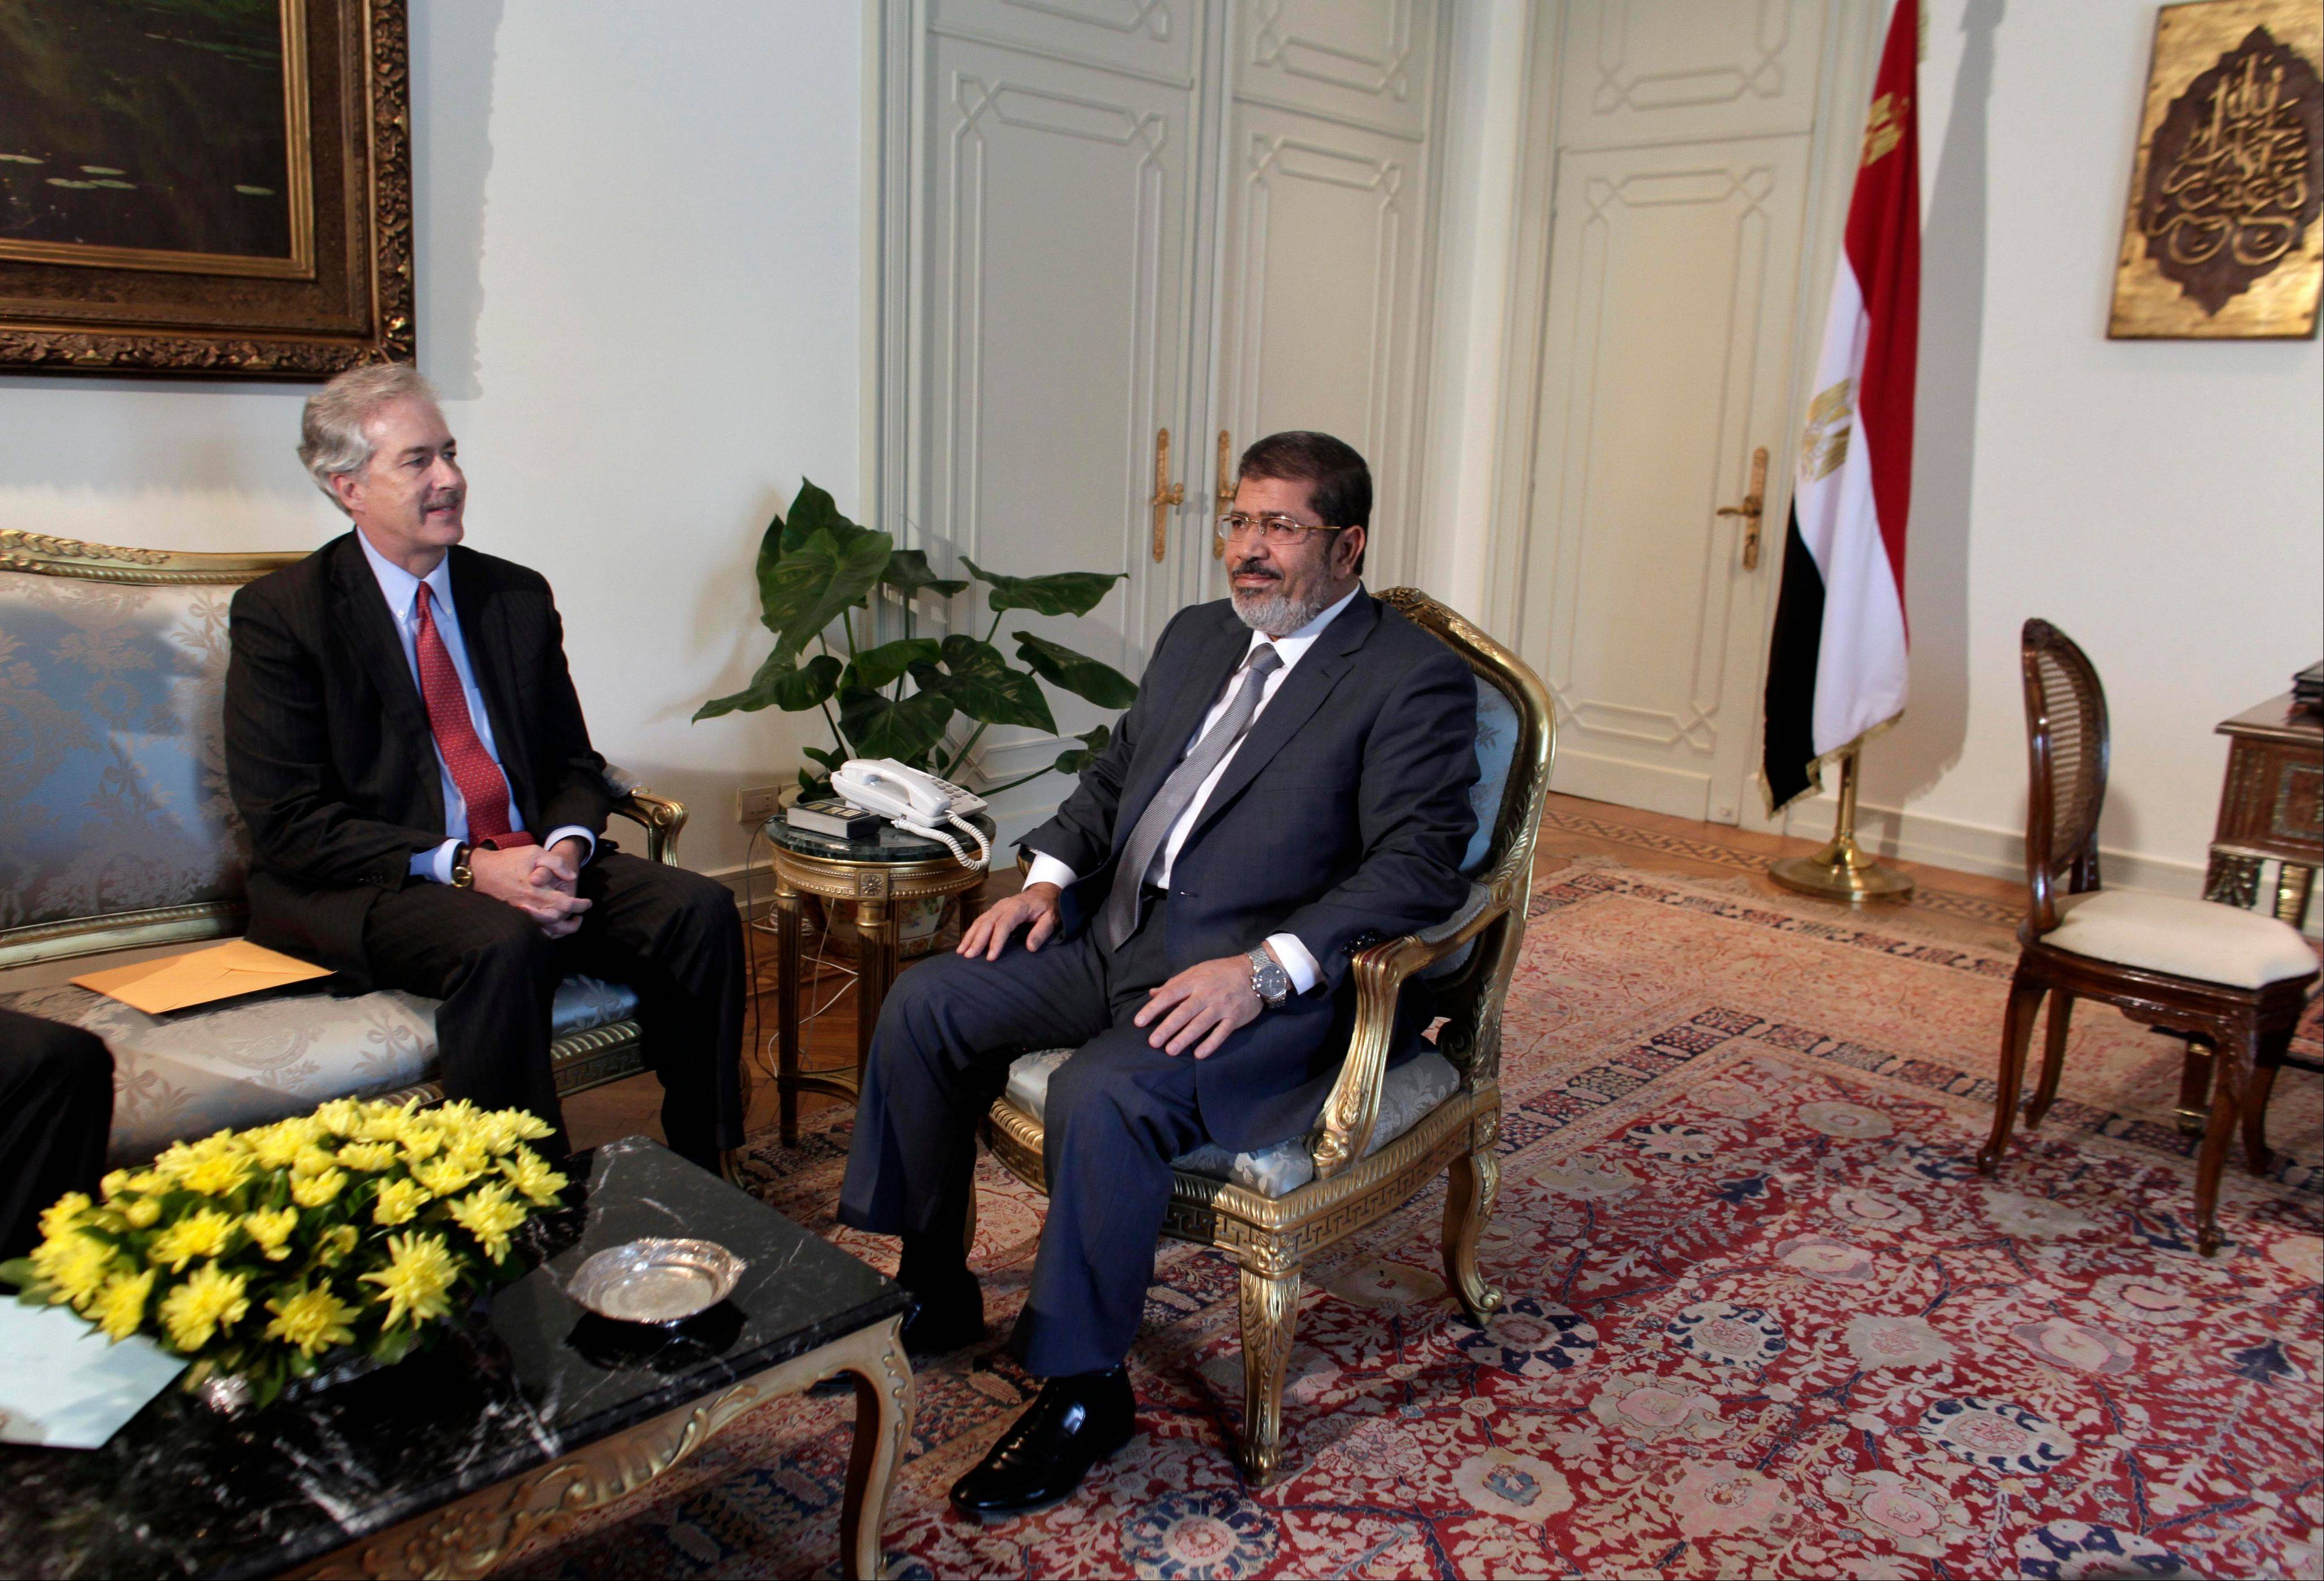 U.S. Undersecretary of State William Burns, left, meets with Egyptian President Mohammed Morsi at the presidential palace in Cairo, Egypt, on Sunday. Egypt's official news agency says Morsi has ordered the return of the country's Islamist-dominated parliament that was dissolved by the powerful military.